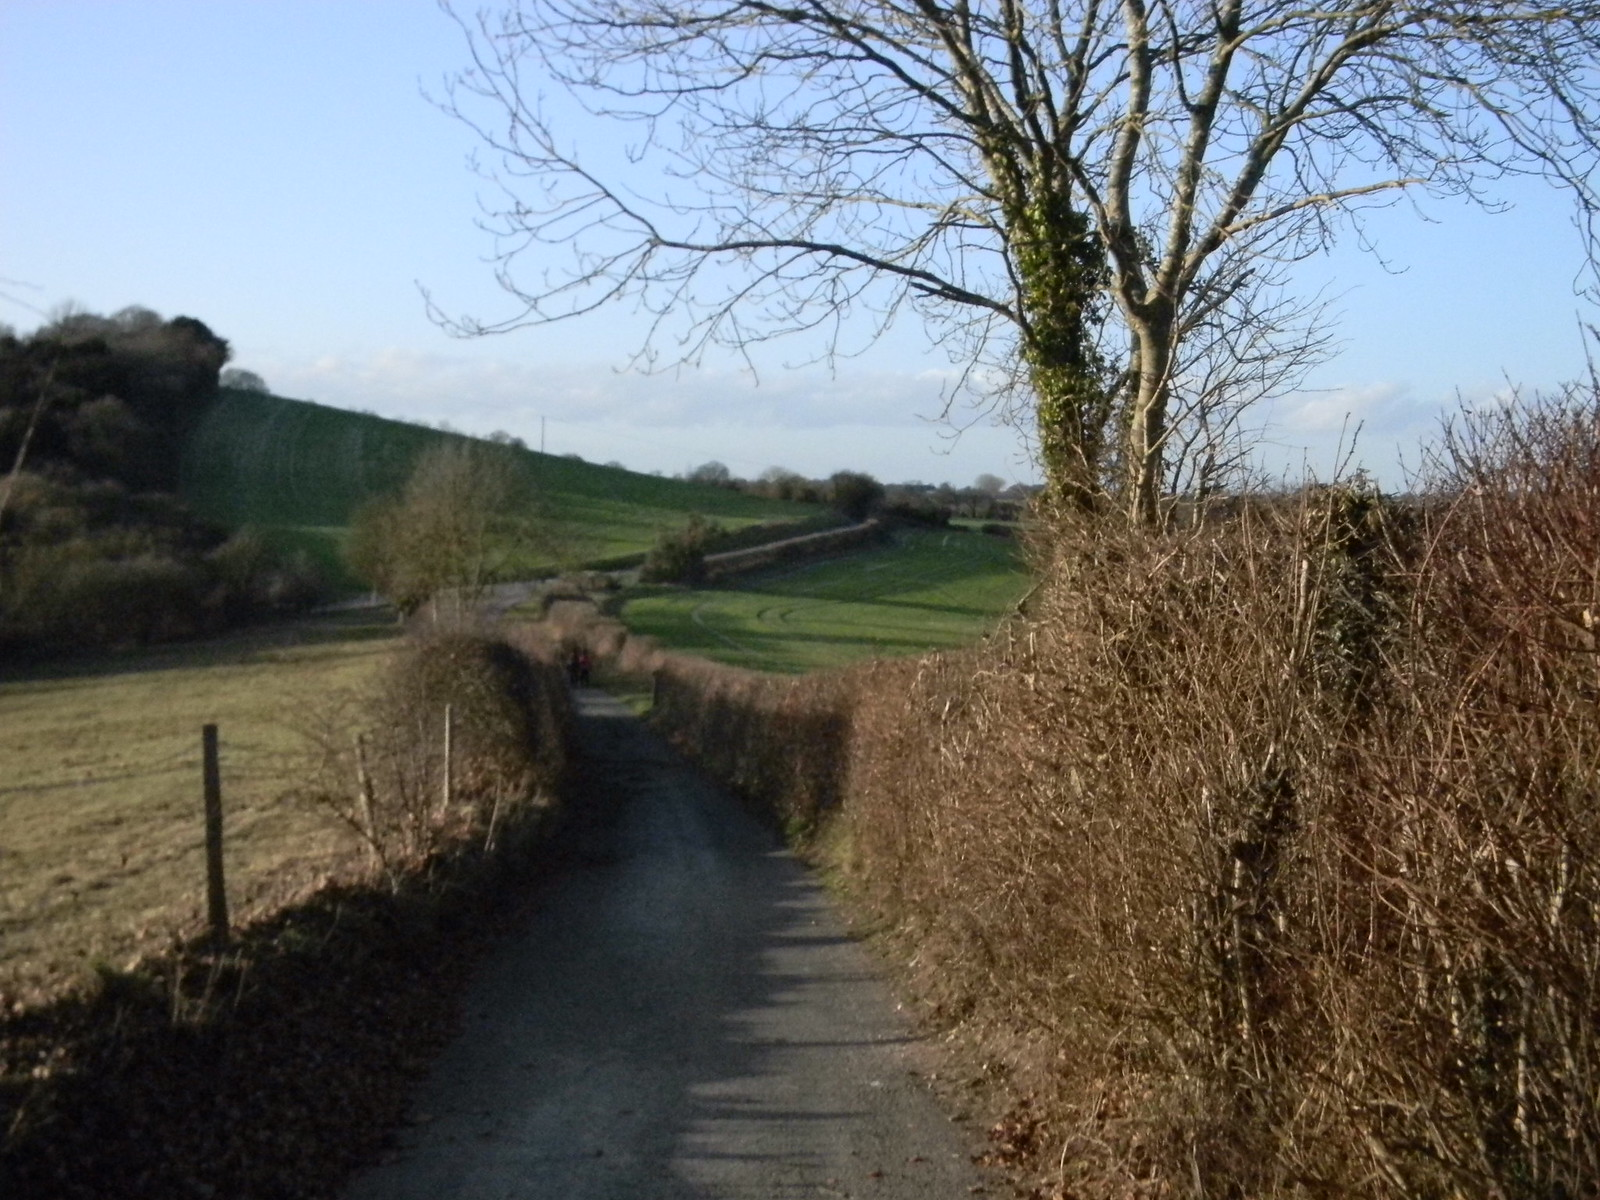 Snaking hedge Saunderton Circular via West Wycombe